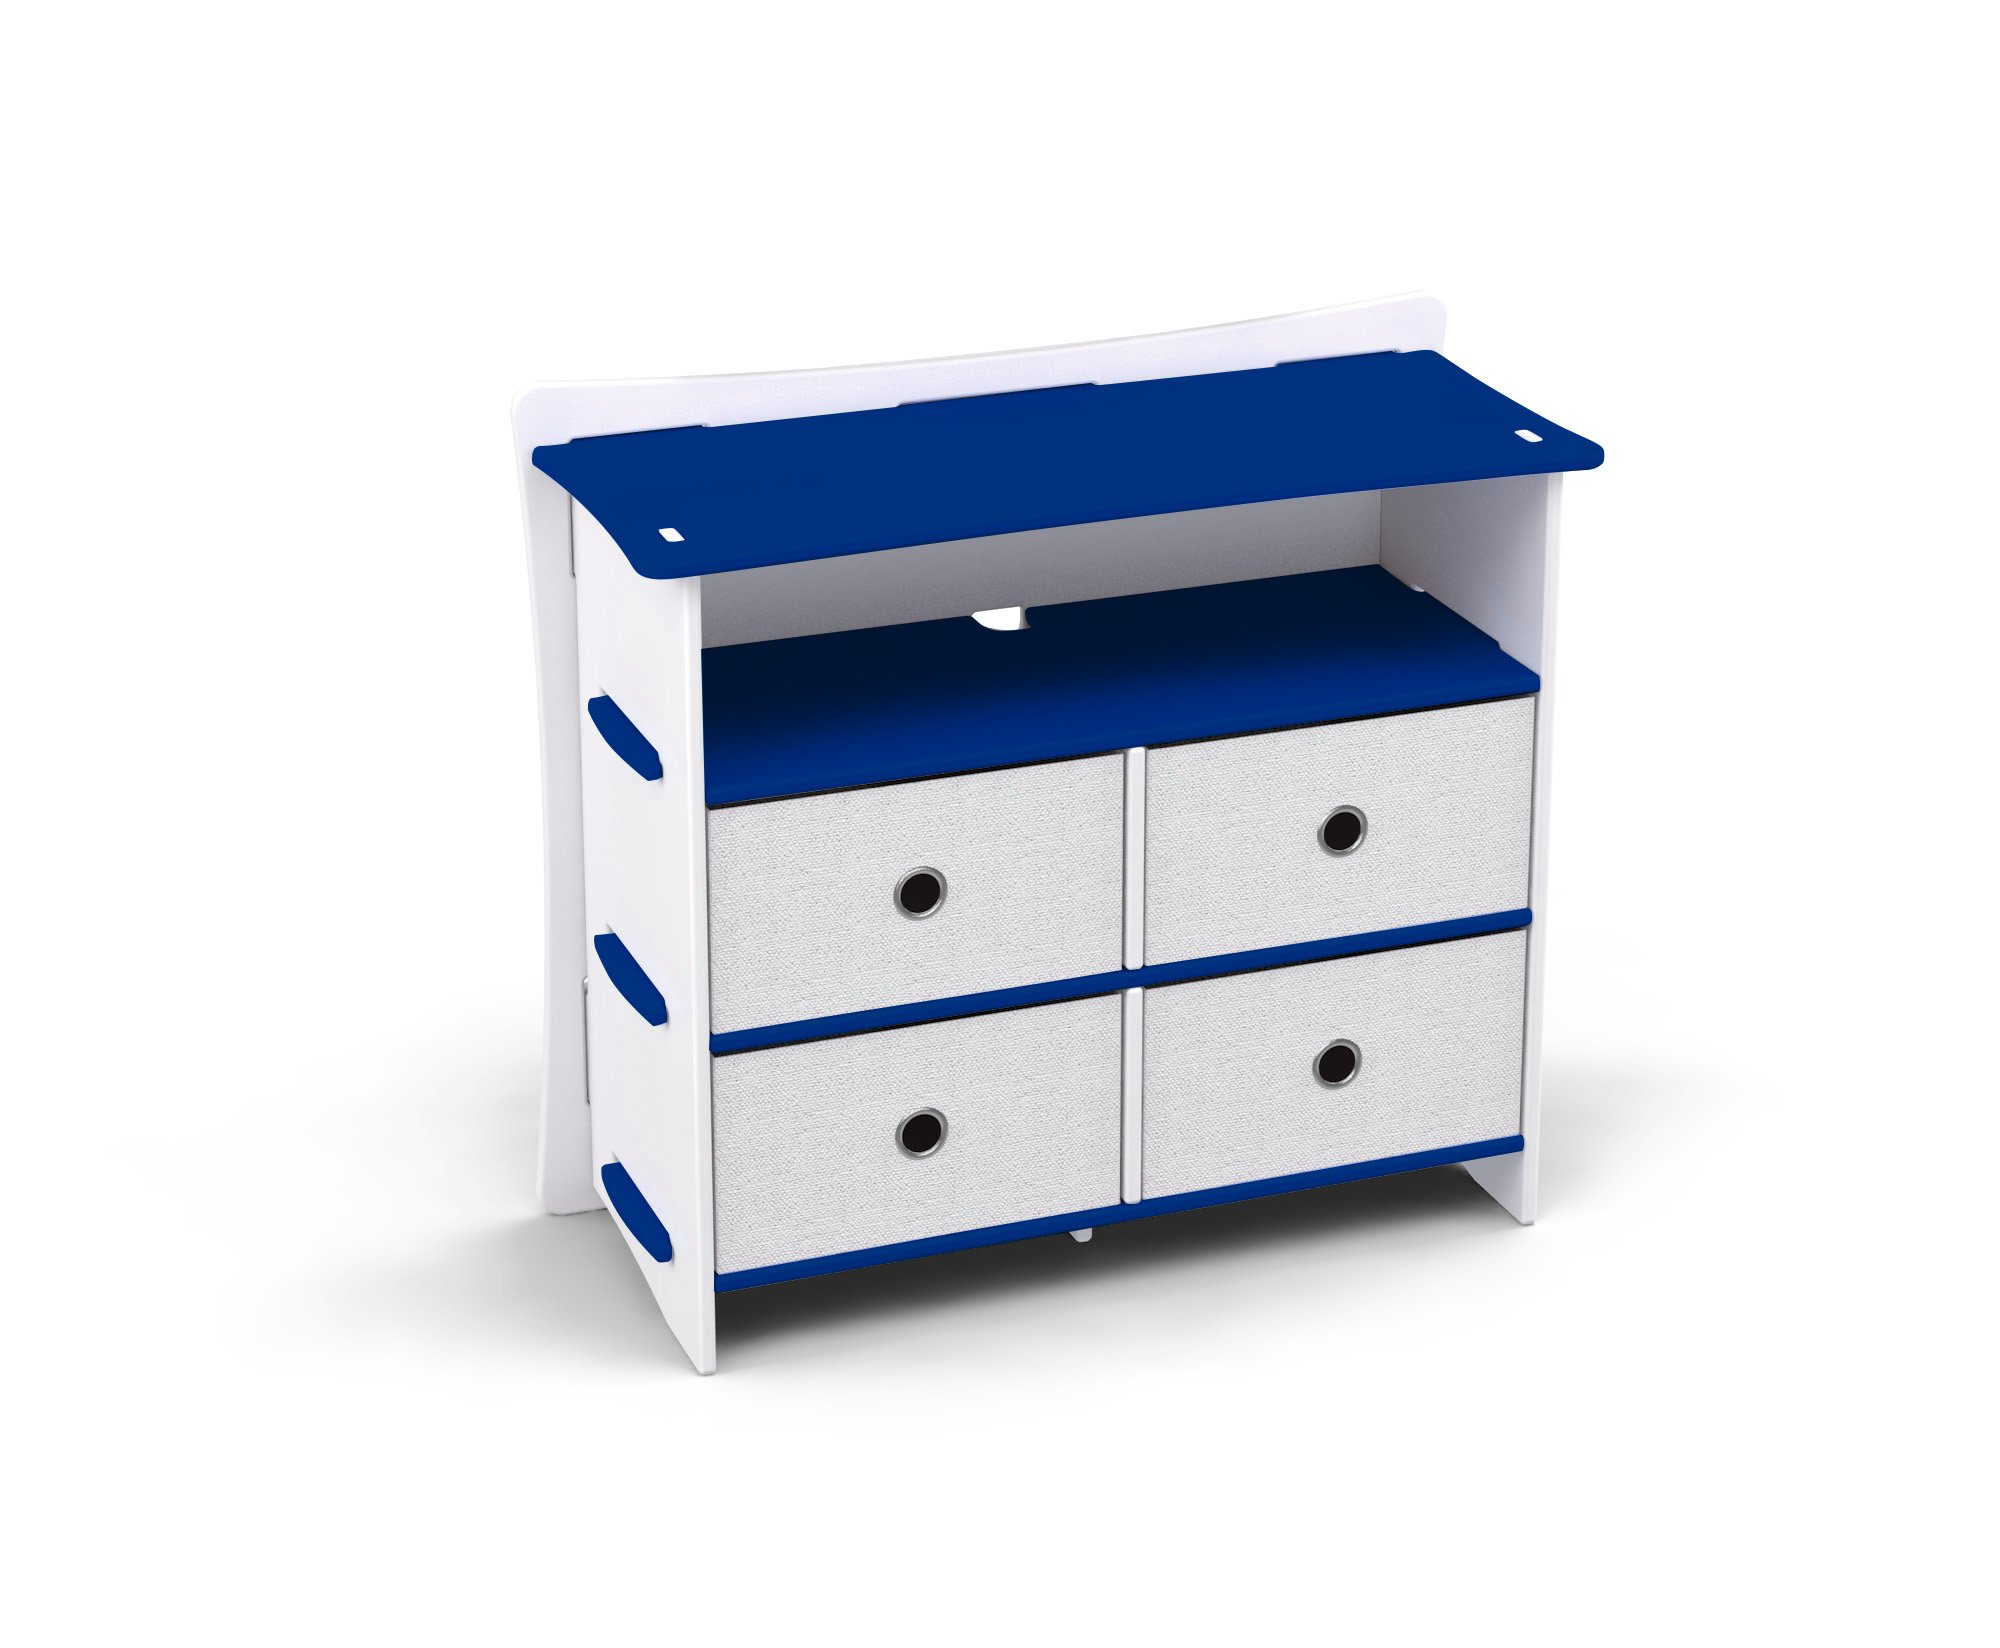 Legaré Kids Furniture Race Car Series Collection, No Tools Assembly 4-Drawer Dresser, Blue and White